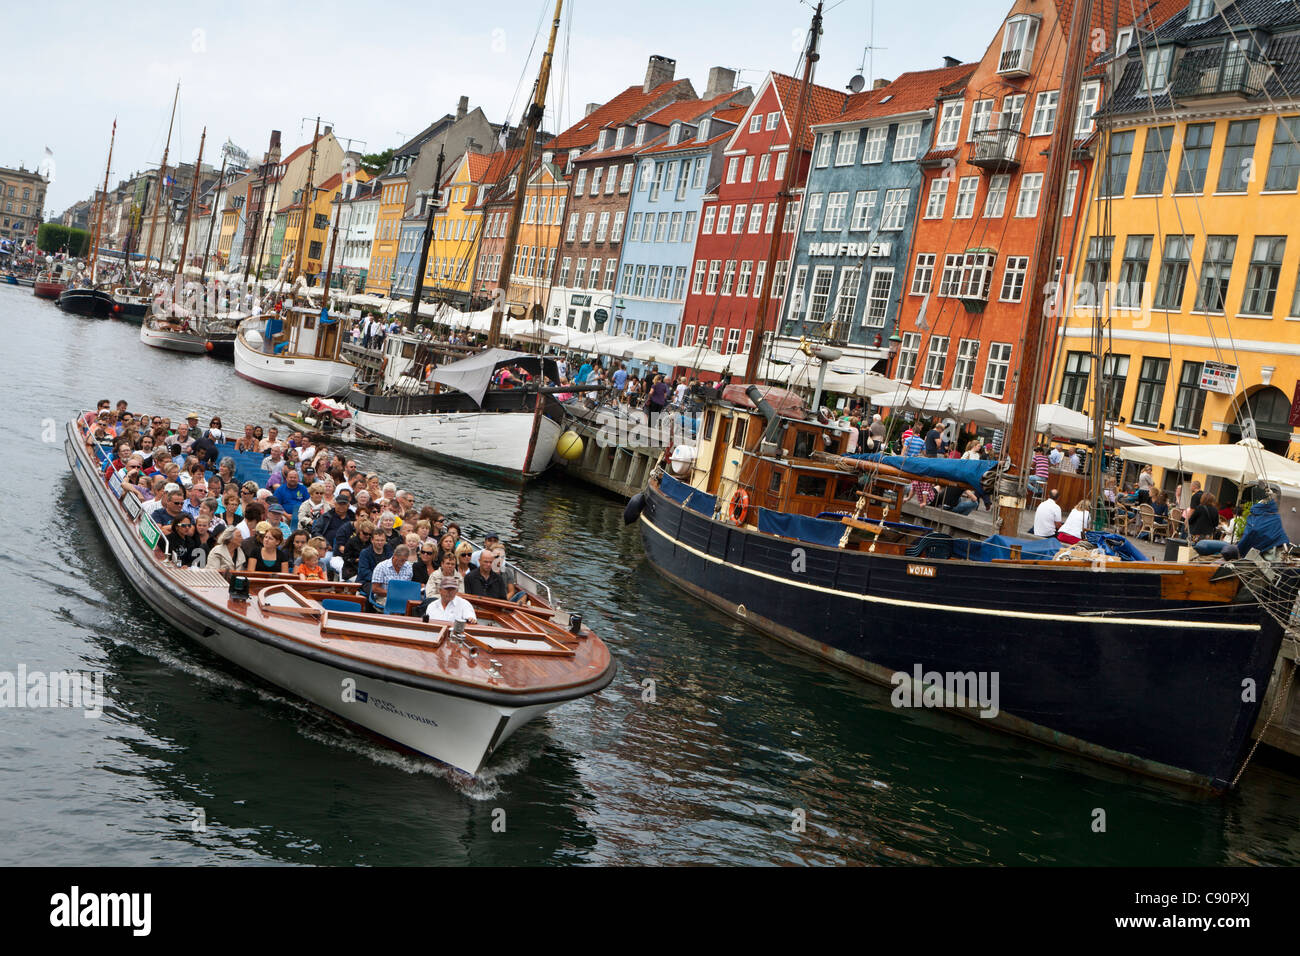 Tourists on a canal cruise, Nyhavn, Copenhagen, Denmark - Stock Image